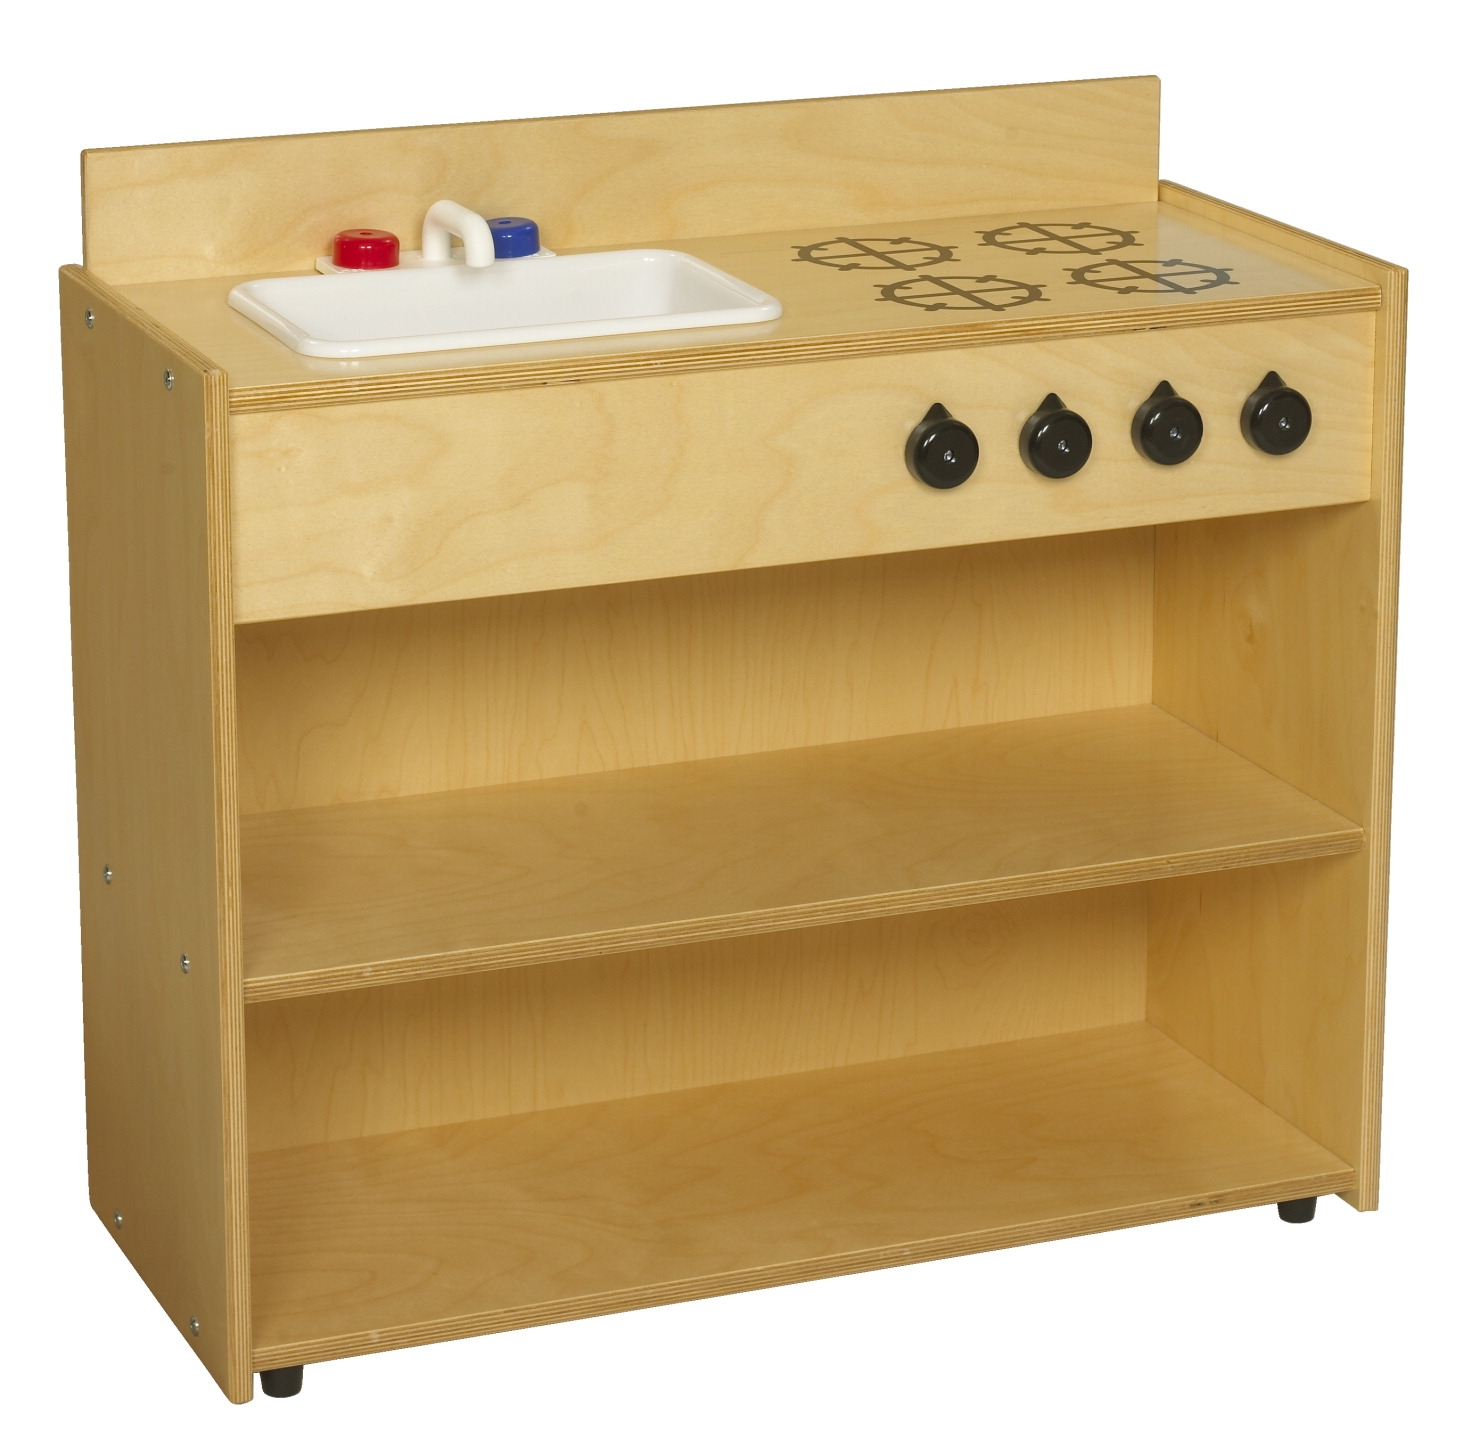 Childcraft Abc Furnishings Sink-stove Combo; 30-3/4 W X 13 D X 28-1/4 H In - 1526463 - Toys Pretend Play Toy Kitchens & Play Food 1526463